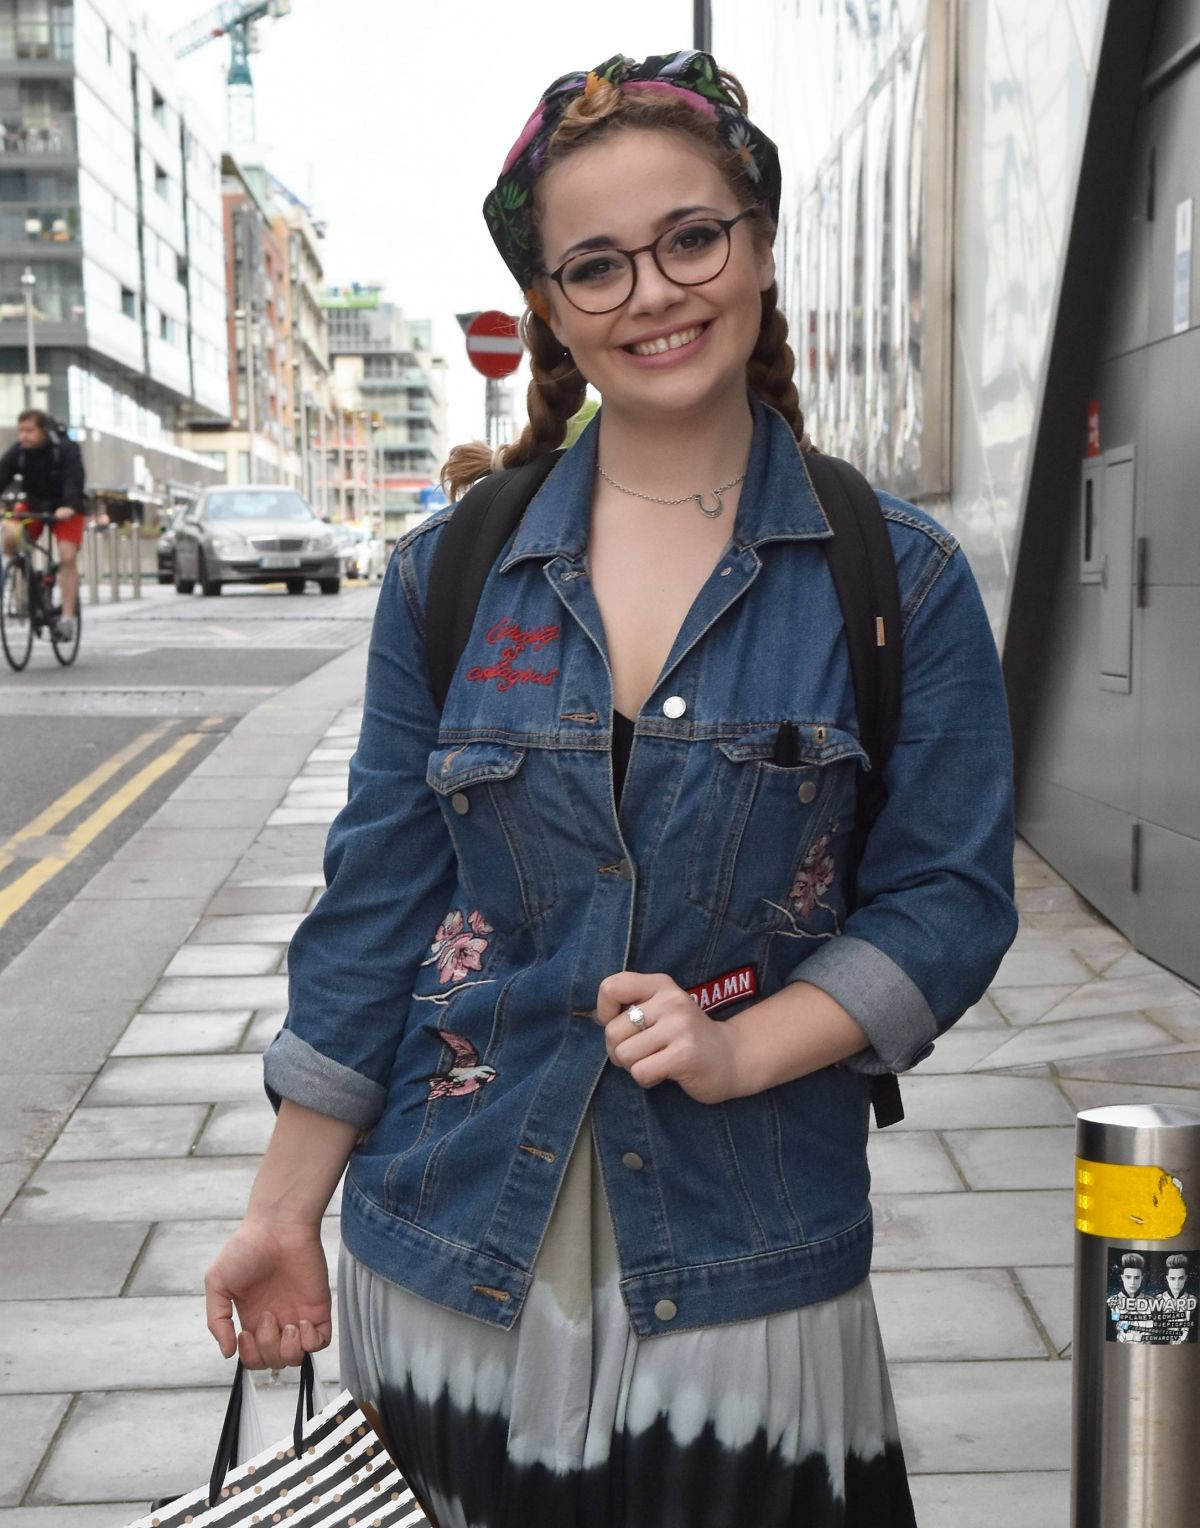 Carrie Hope Fletcher Attends the opening night of The Addams Family at Bord Gais Energy Theatre, Dublin